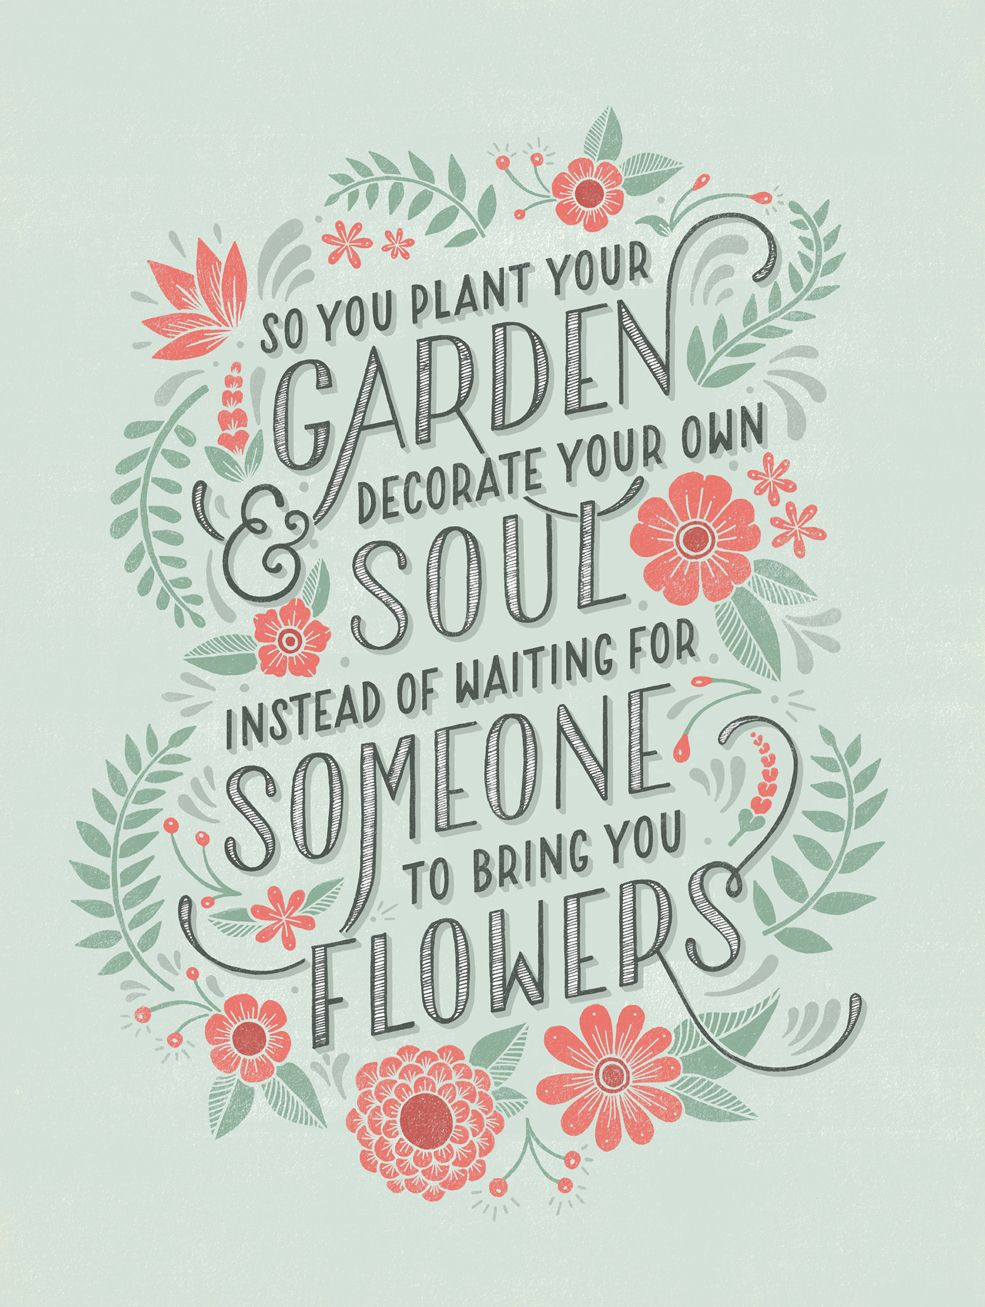 So You Plant Your Garden Decorate Own Soul Instead Of Waiting For Someone To Bring Flowers